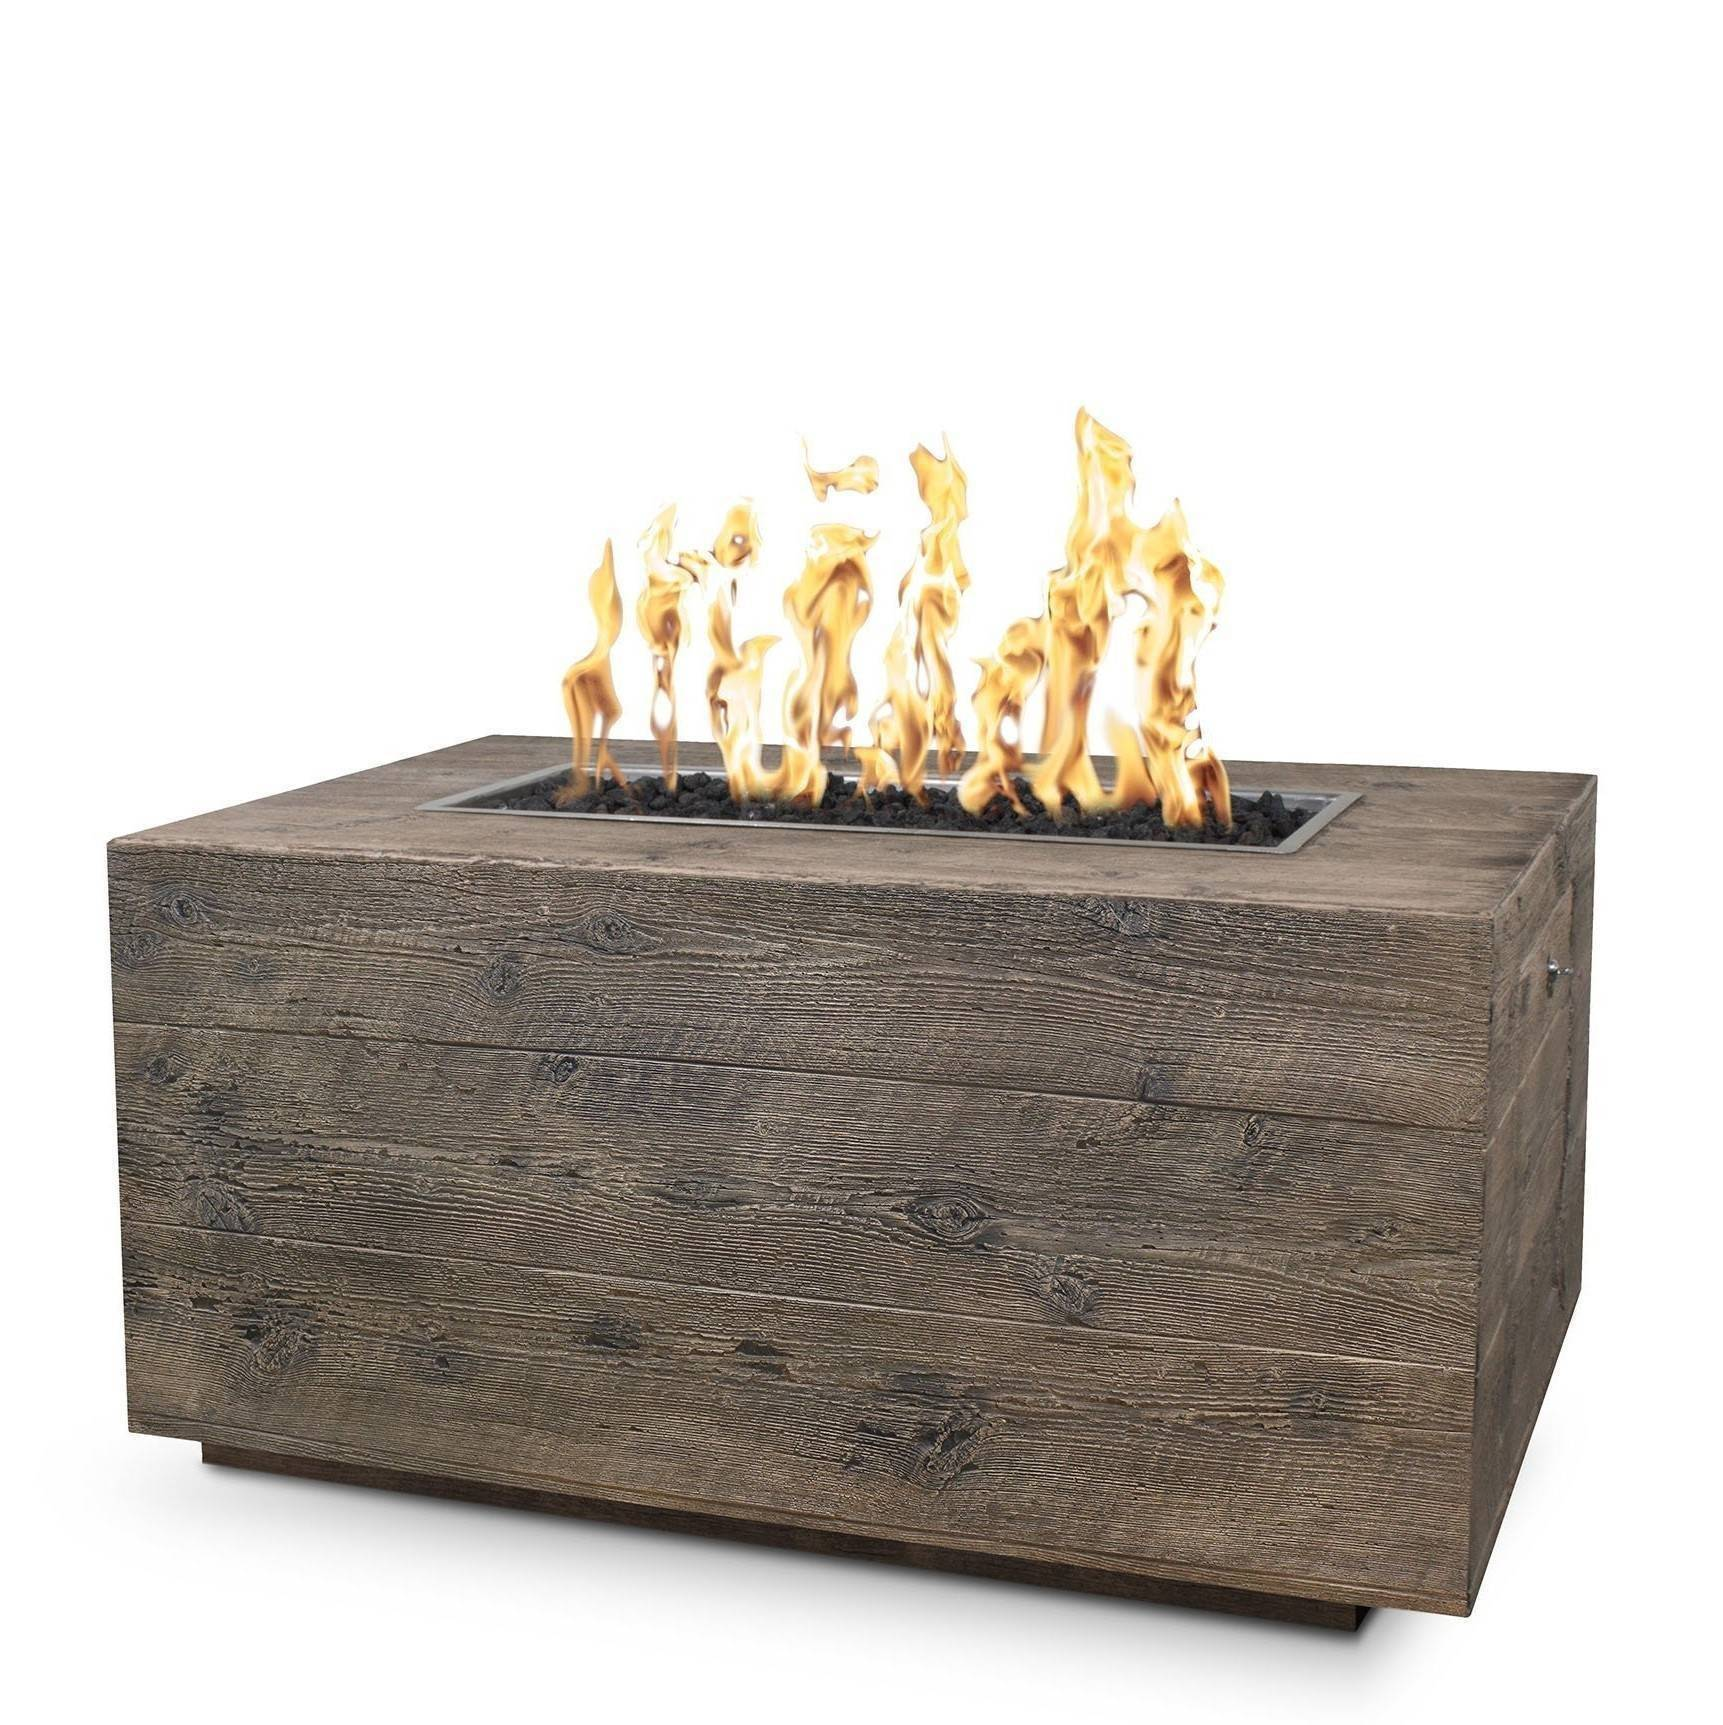 "48"" Catalina Wood Grain Concrete Fire Pit Table - Oak"